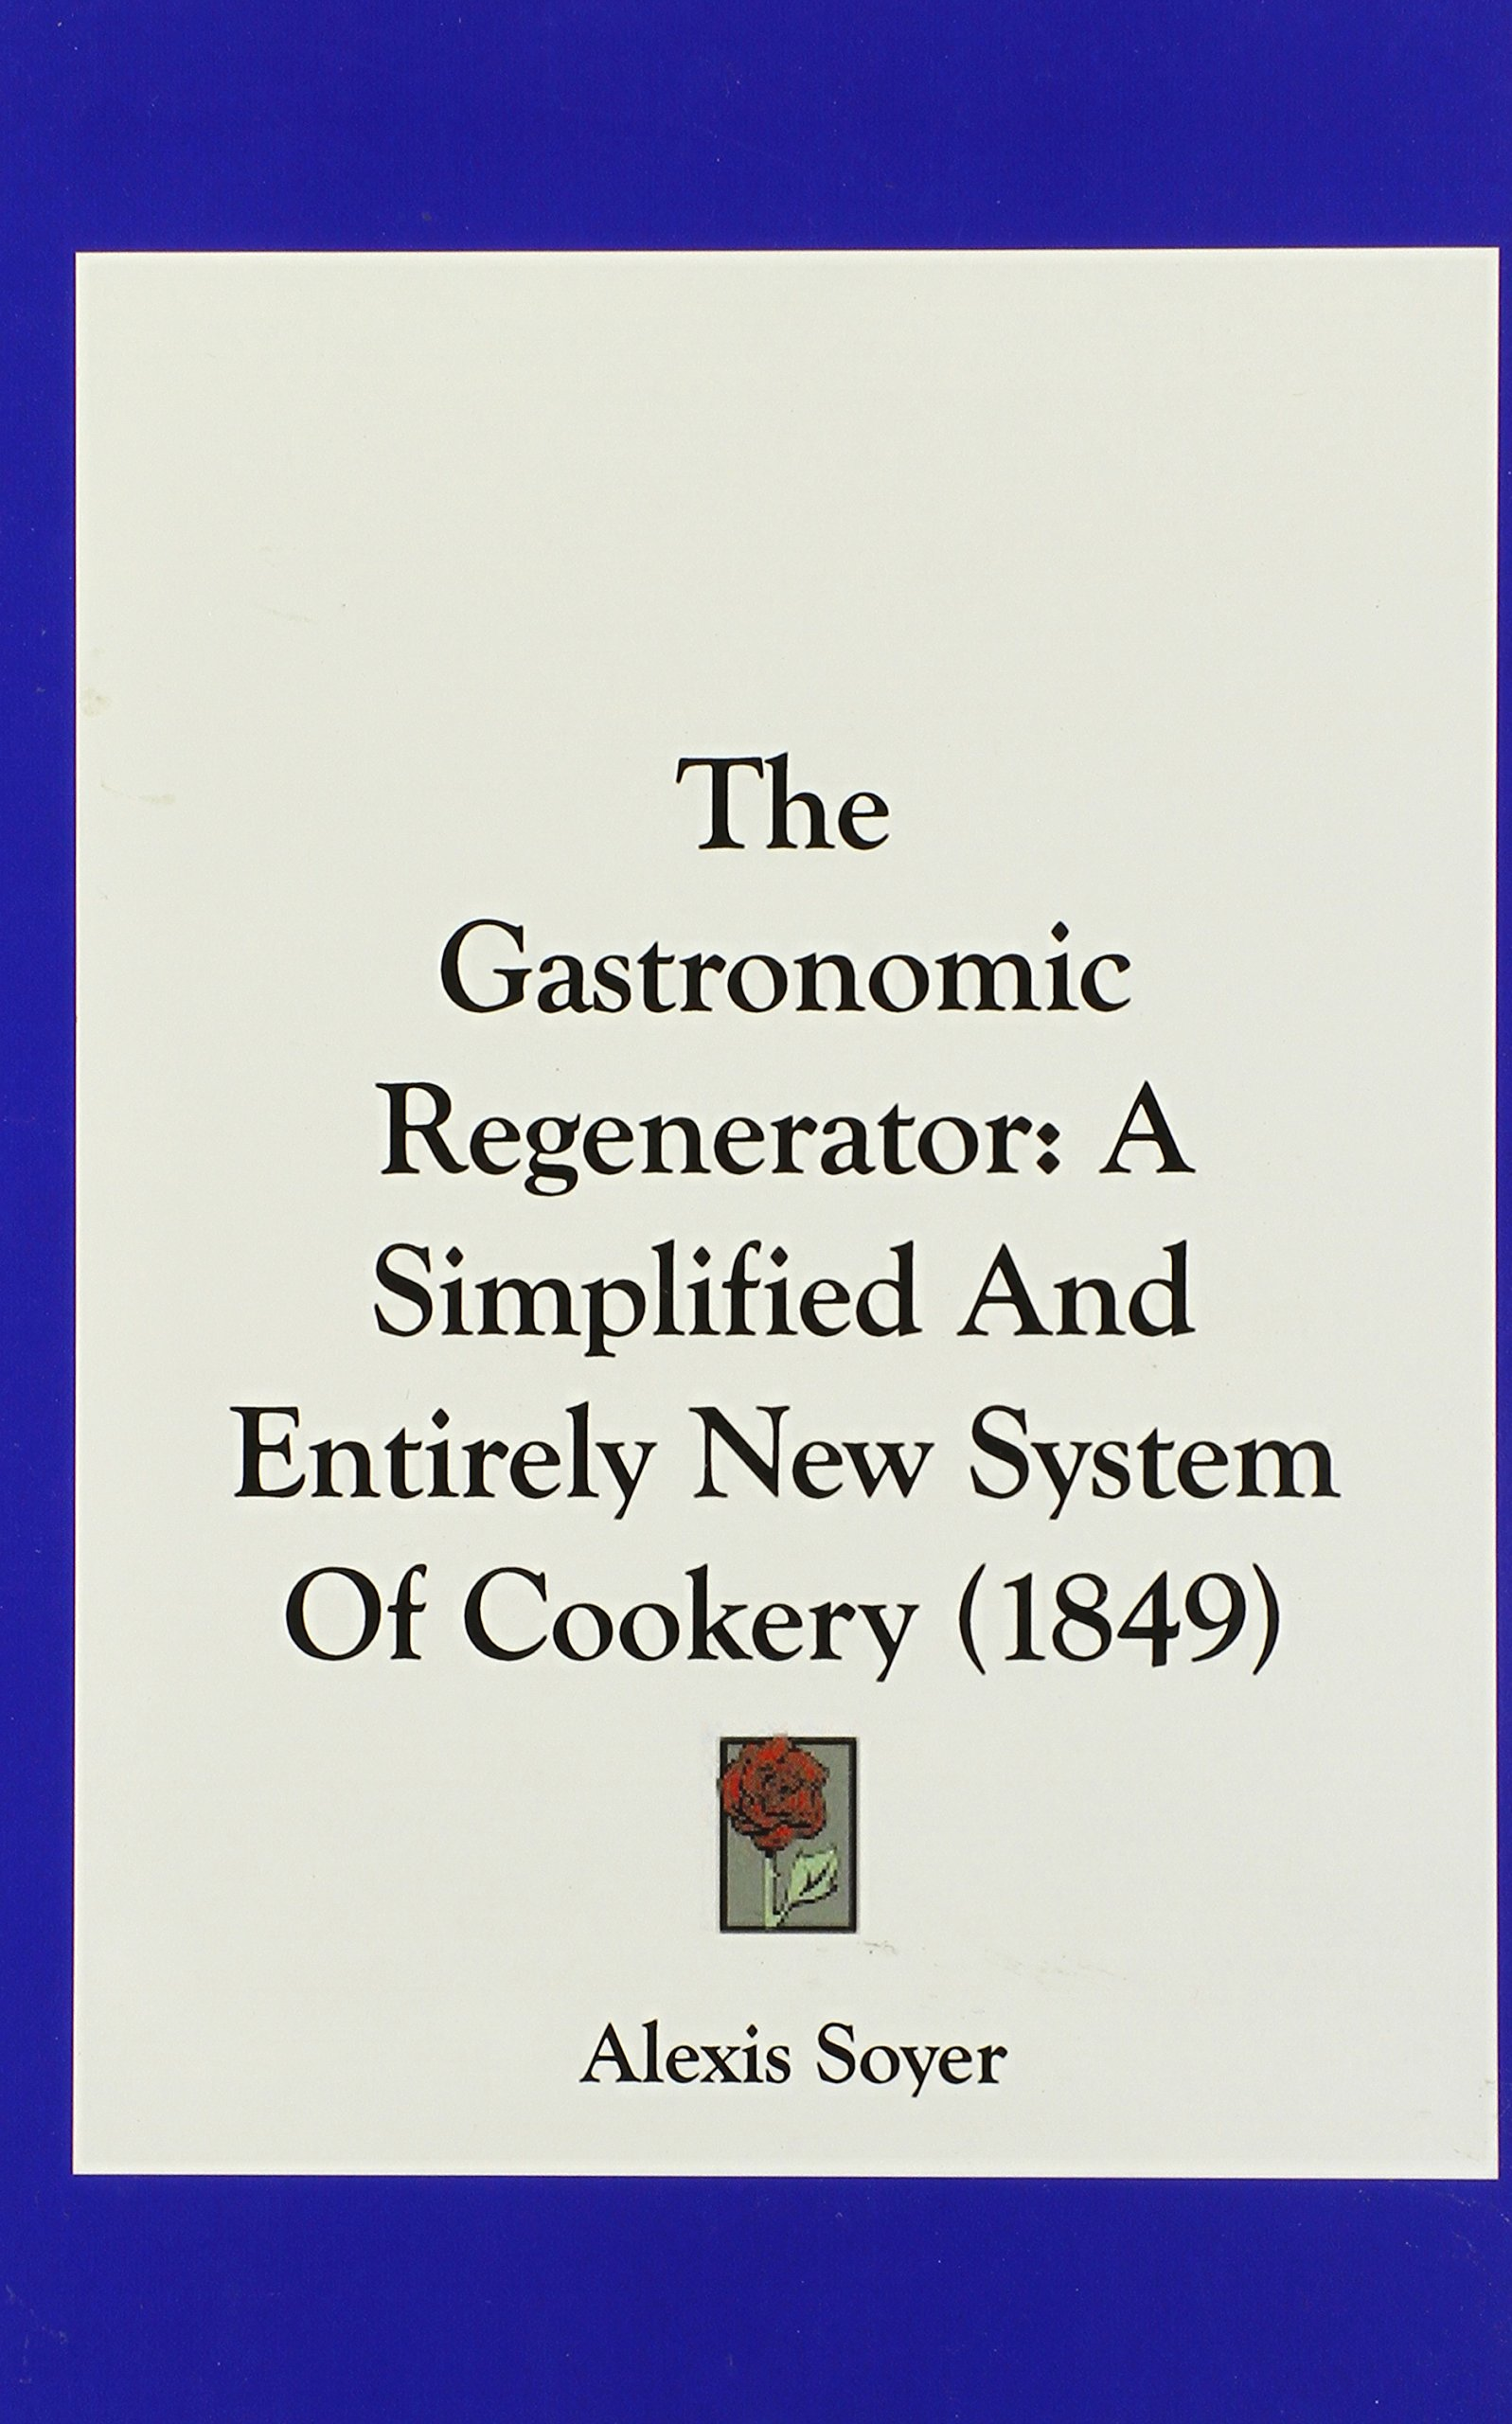 The Gastronomic Regenerator: A Simplified and Entirely New System of Cookery (1849) ebook